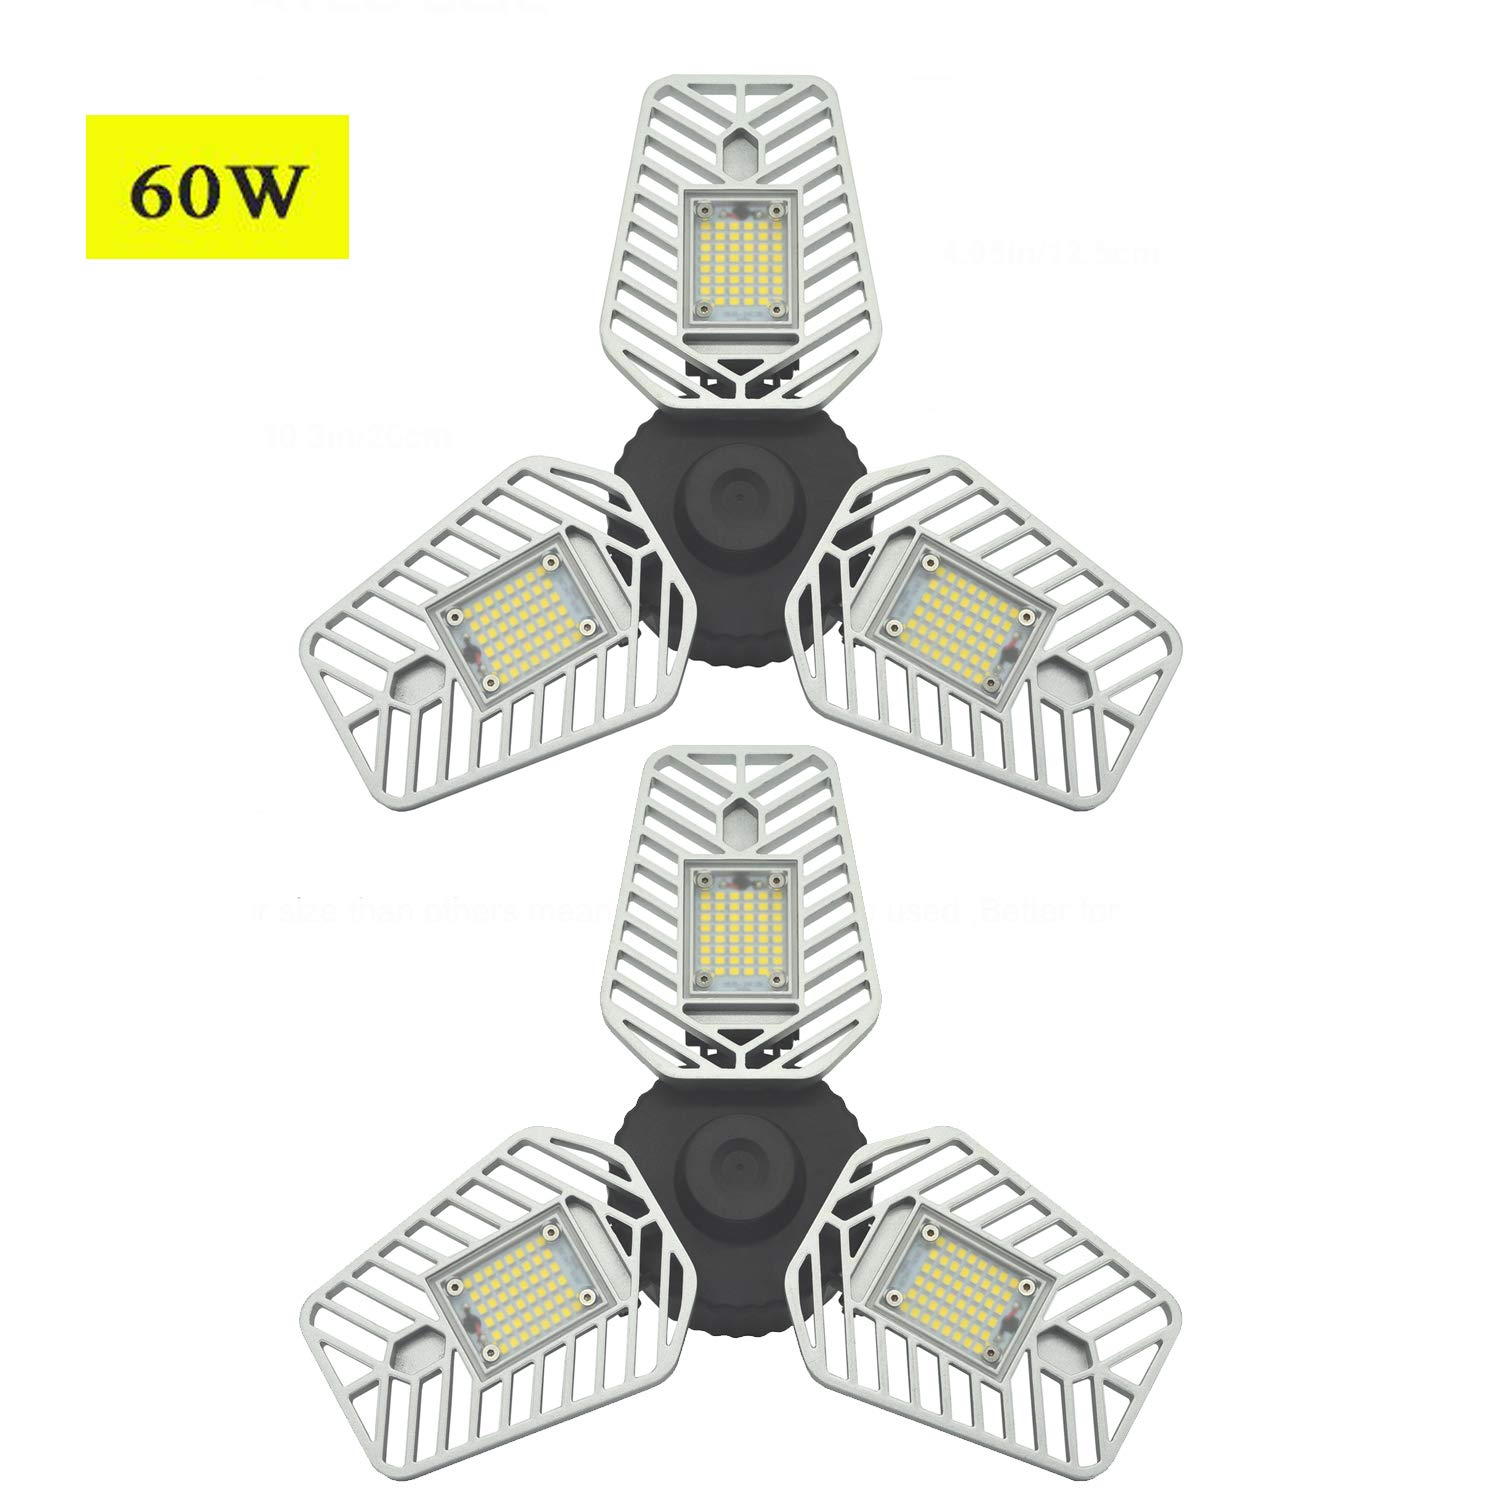 LED Garage Light, 60W 5000K Day Light LED Garage Ceiling Light, 6500Lm LED Garage Lights CRI 80 Garage trilight with 3 Deformable Panels,Led Shop Light (60W Ordinary Version 2 Pack)